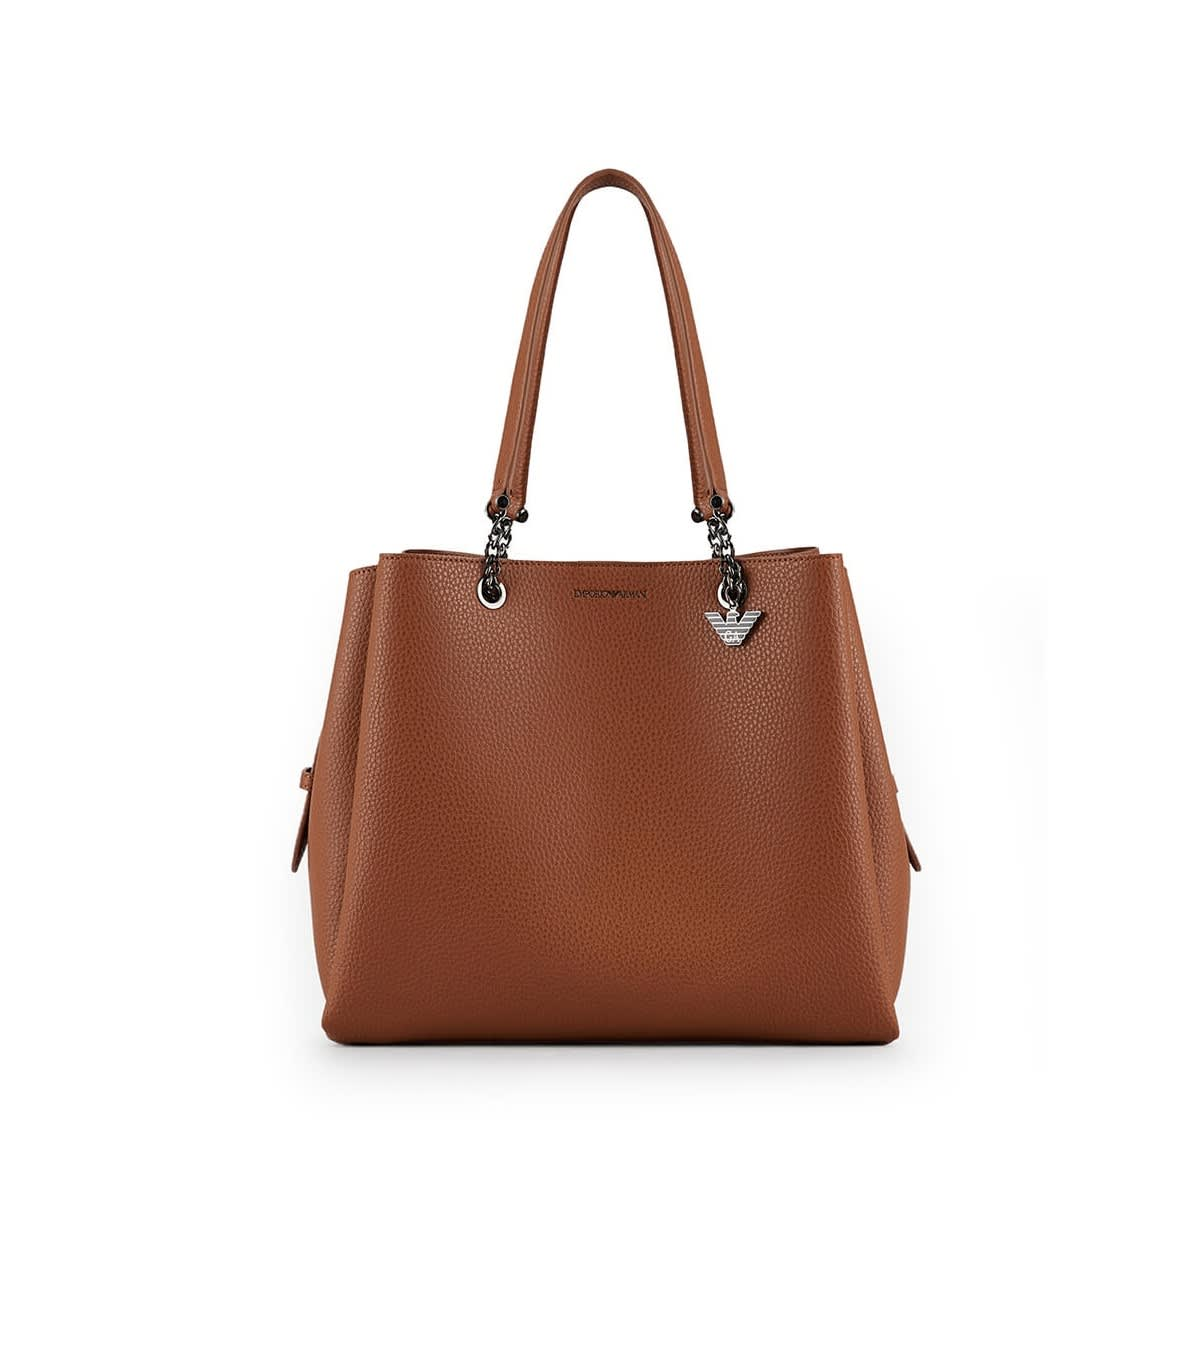 Emporio Armani LIGHT BROWN FAUX LEATHER SHOPPING BAG